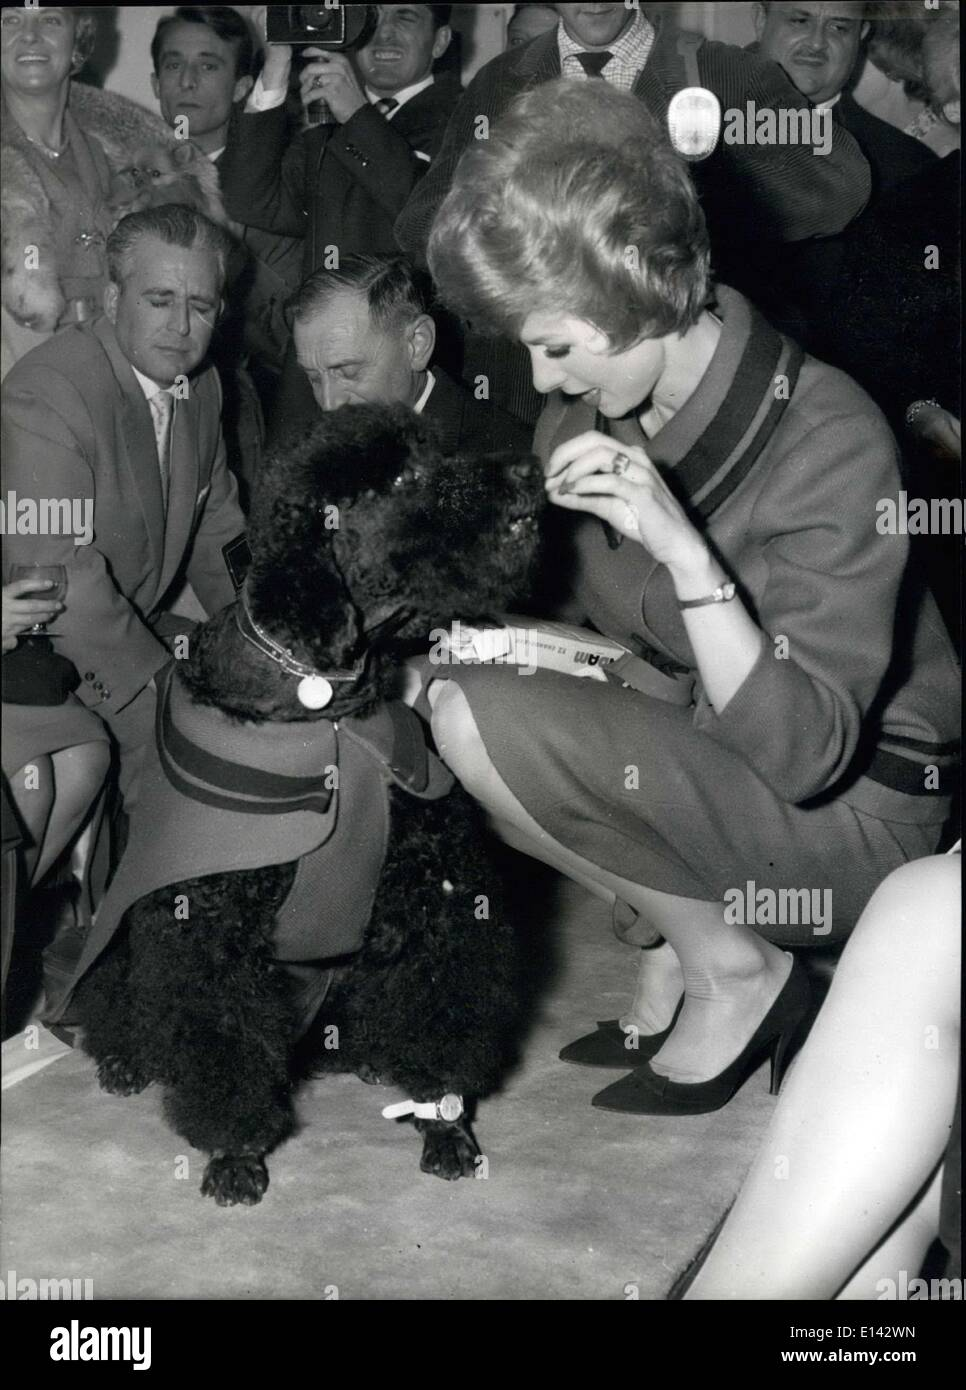 Mar. 31, 2012 - The doggy model is persuaded to pose for the cameras by Cendrine who gives him a chocolate. Both wear the same fashions, in grey and black flannel and both also wear a wrist watch. - Stock Image